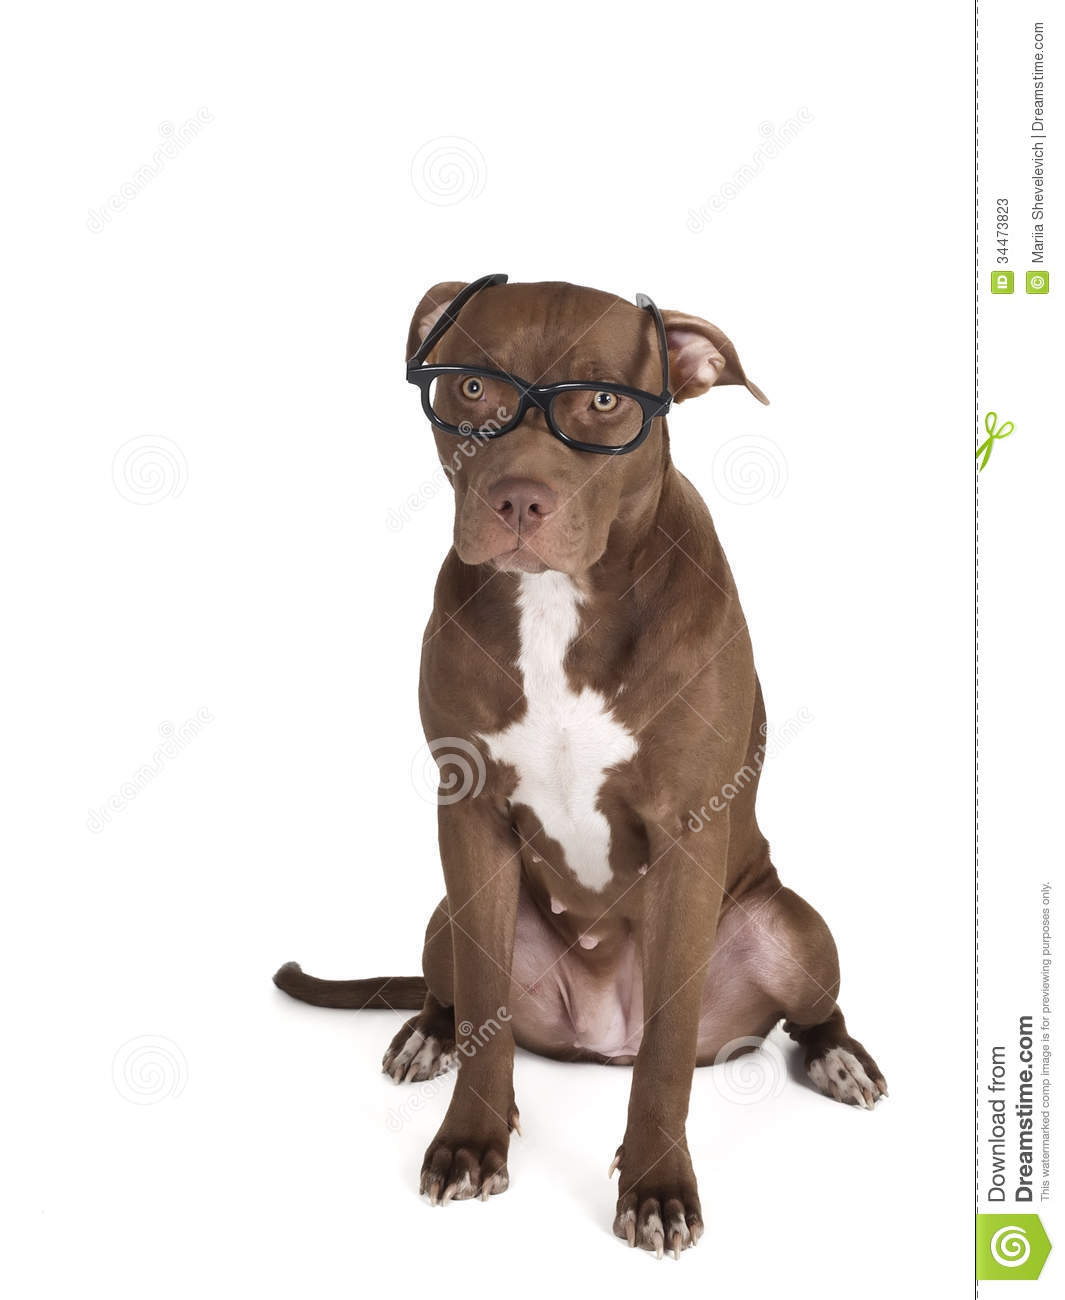 Pit bull sits in black glasses on a white background.